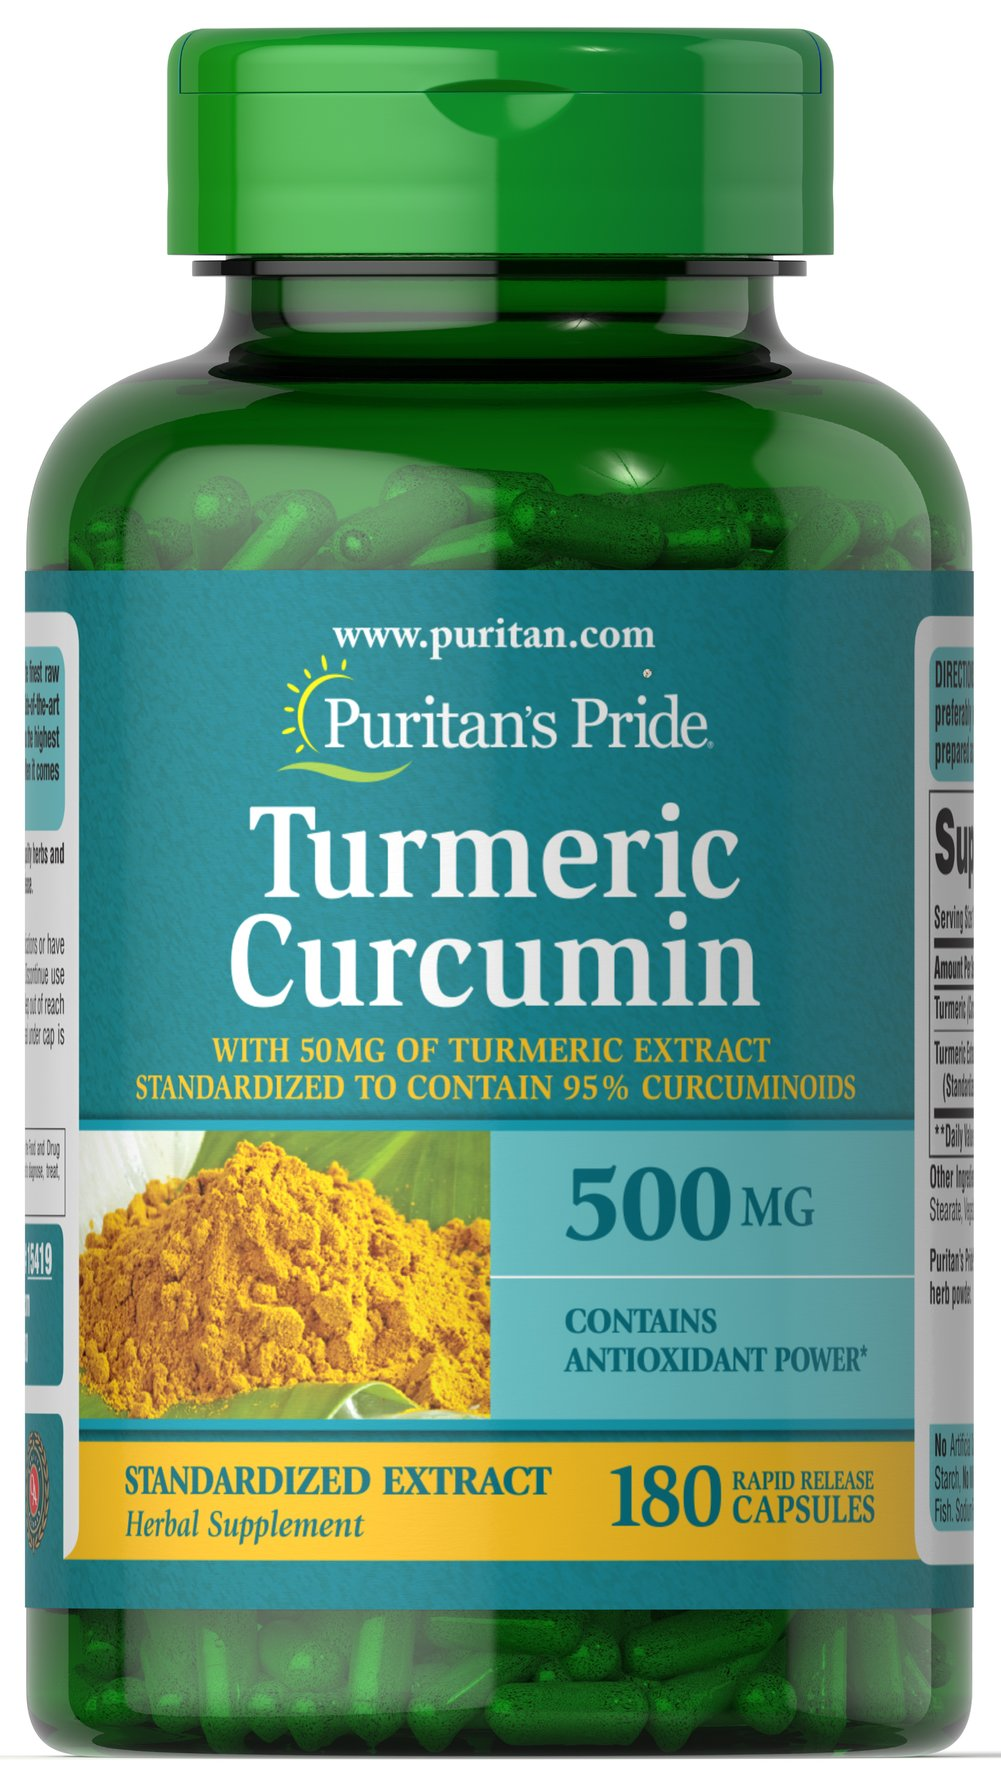 Turmeric Curcumin 450 mg <p>The active ingredients in Turmeric include beneficial flavonoids called Curcuminoids, which are plant-based antioxidants. **</p><p>Contains antioxidants</p> 180 Capsules 450 mg $18.19